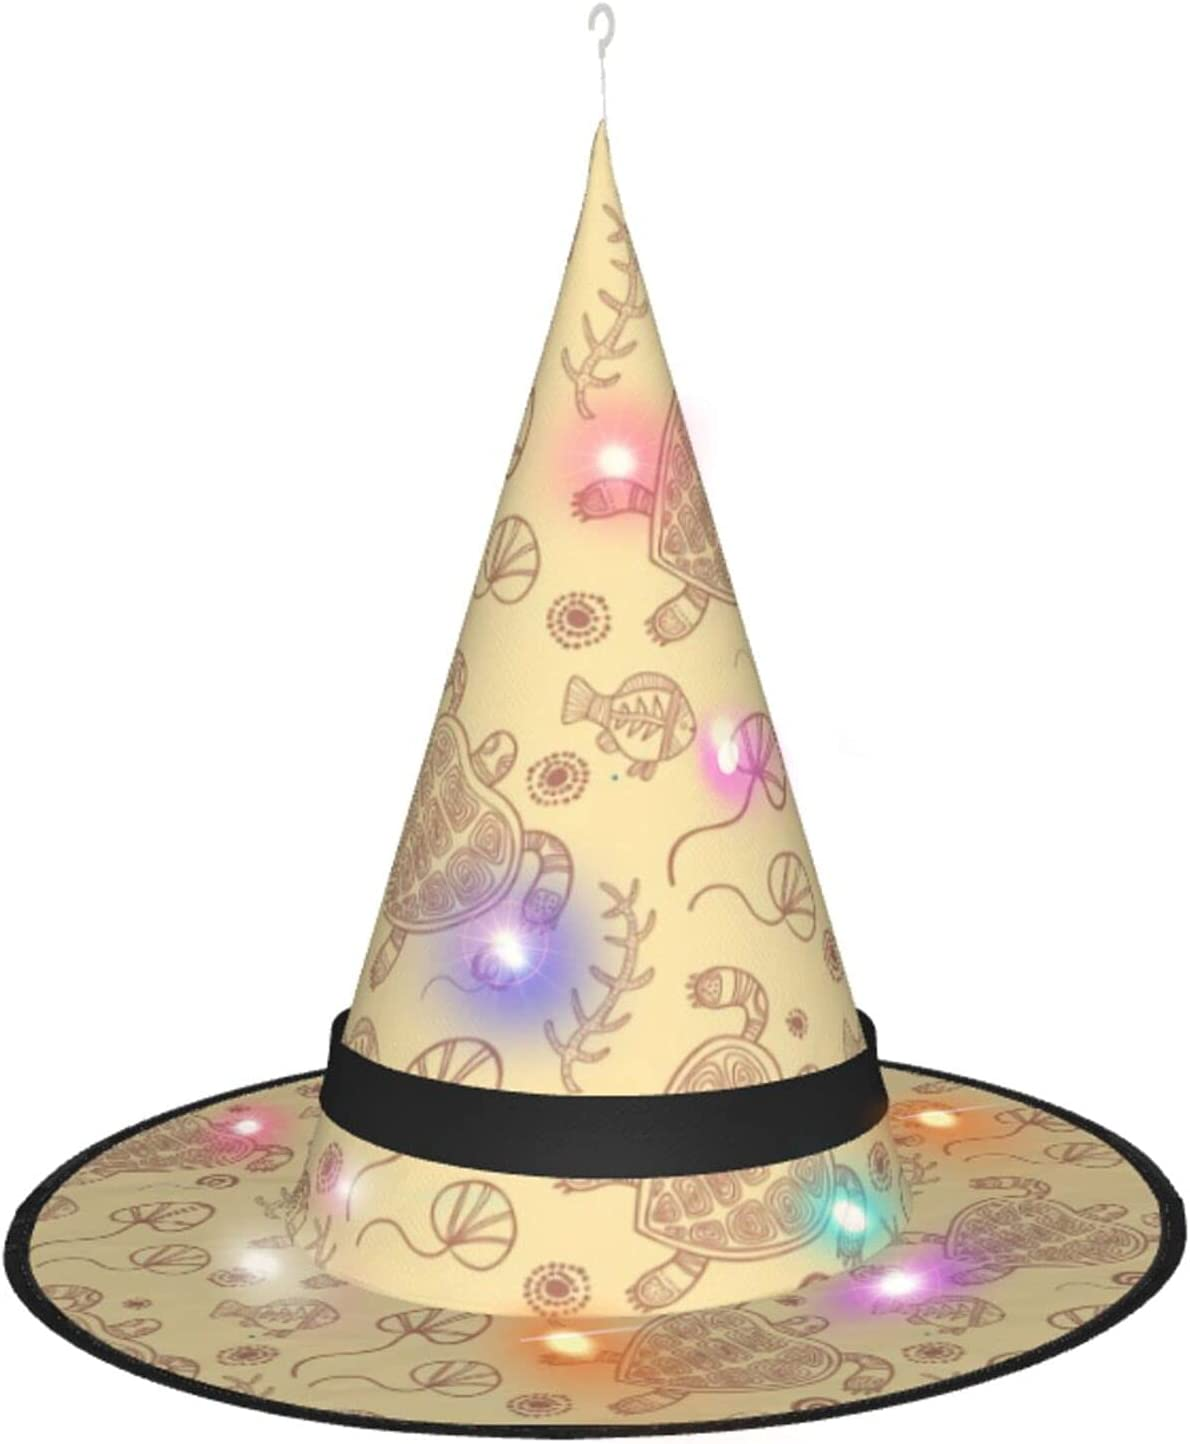 AJUNJUNPAI Beige Turtle Halloween Hat Max 51% OFF New products world's highest quality popular Colourful Interest Glowing